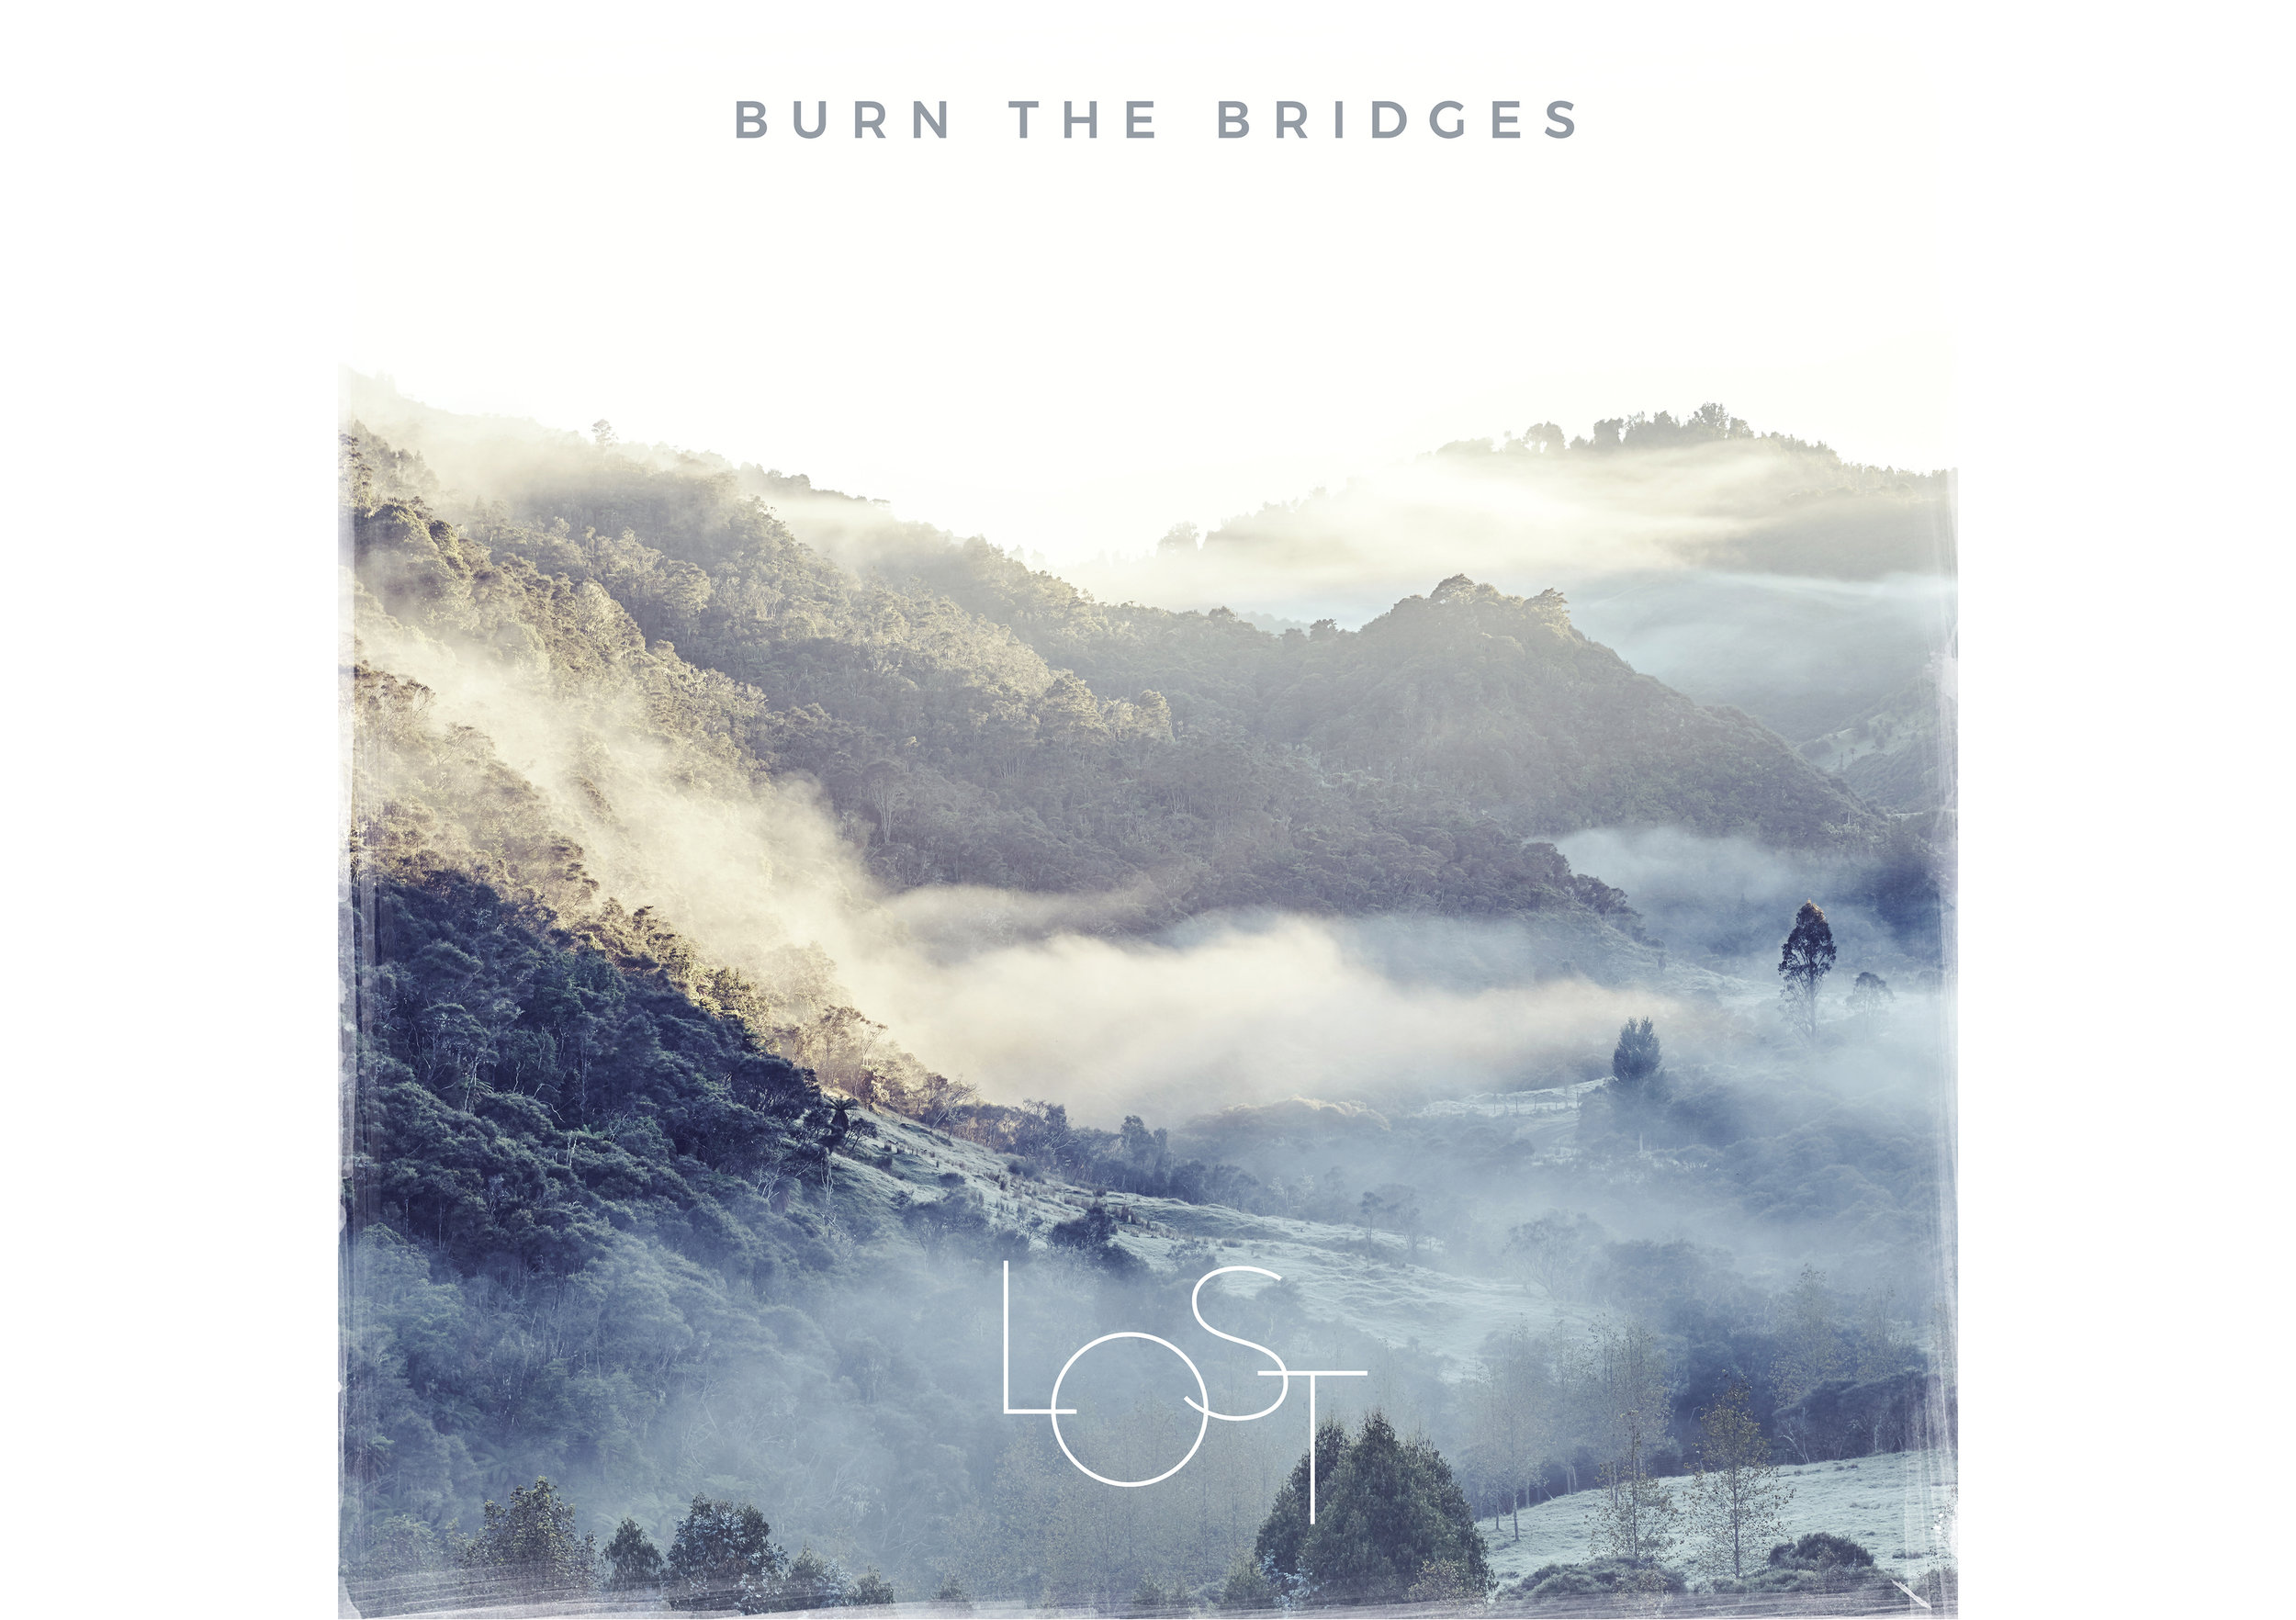 Burning the Bridges_Single cover_WEBTEST1.jpg